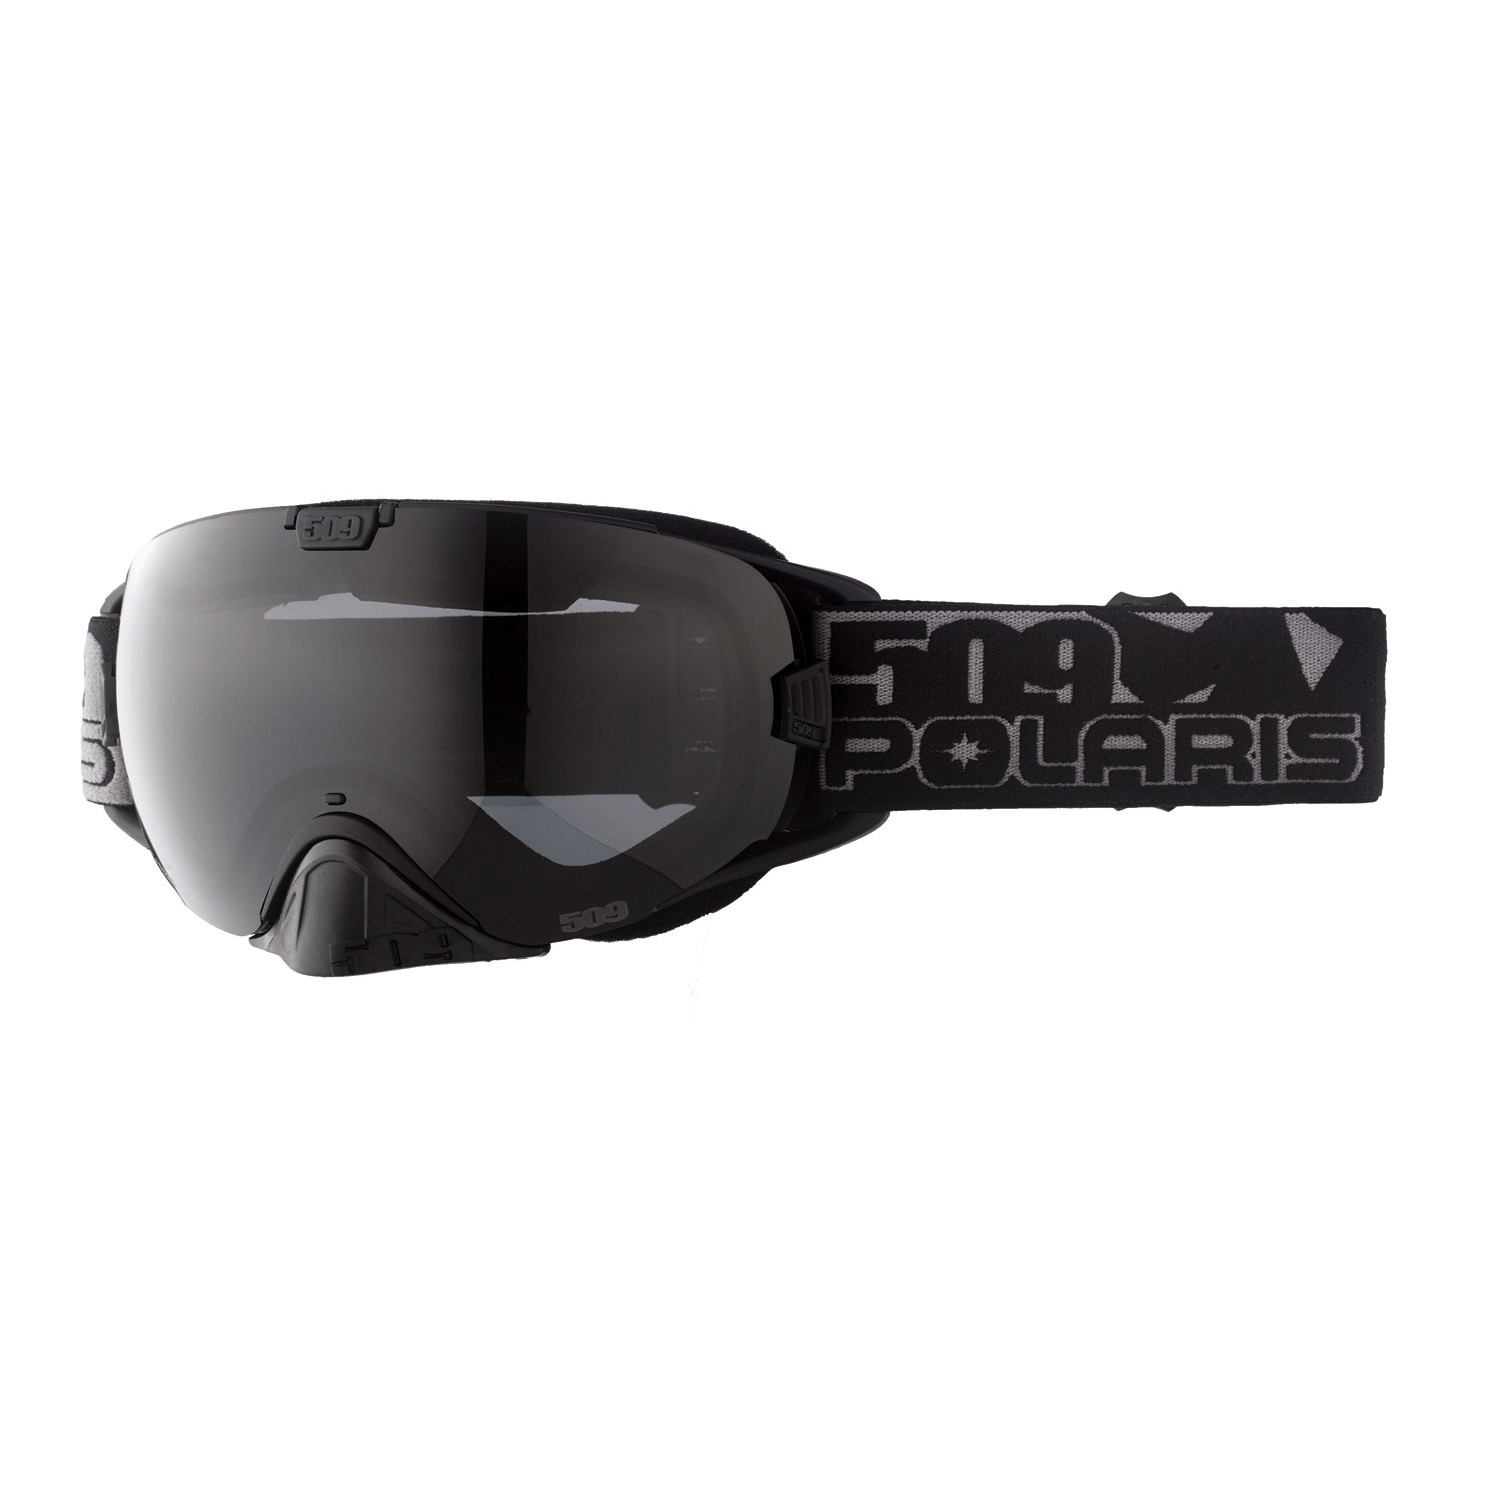 509® Revolver Adjustable Snow Goggles with Pivot Lens Lock Technology, Polarized Smoke